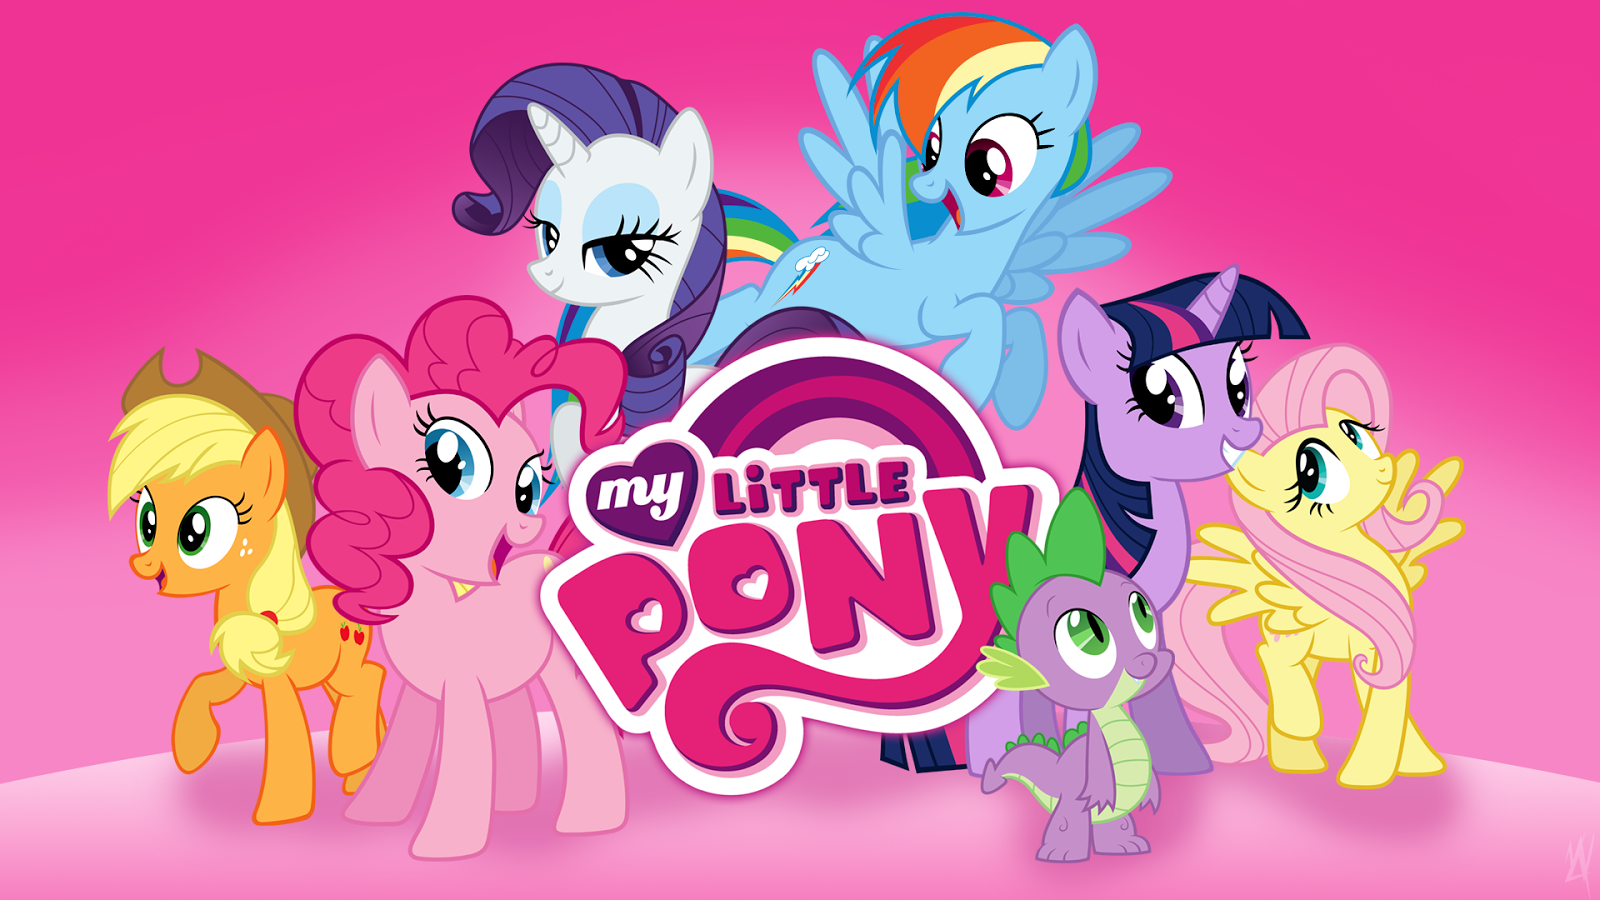 V.24 My Little Pony Wallpaper - My Little Pony Images